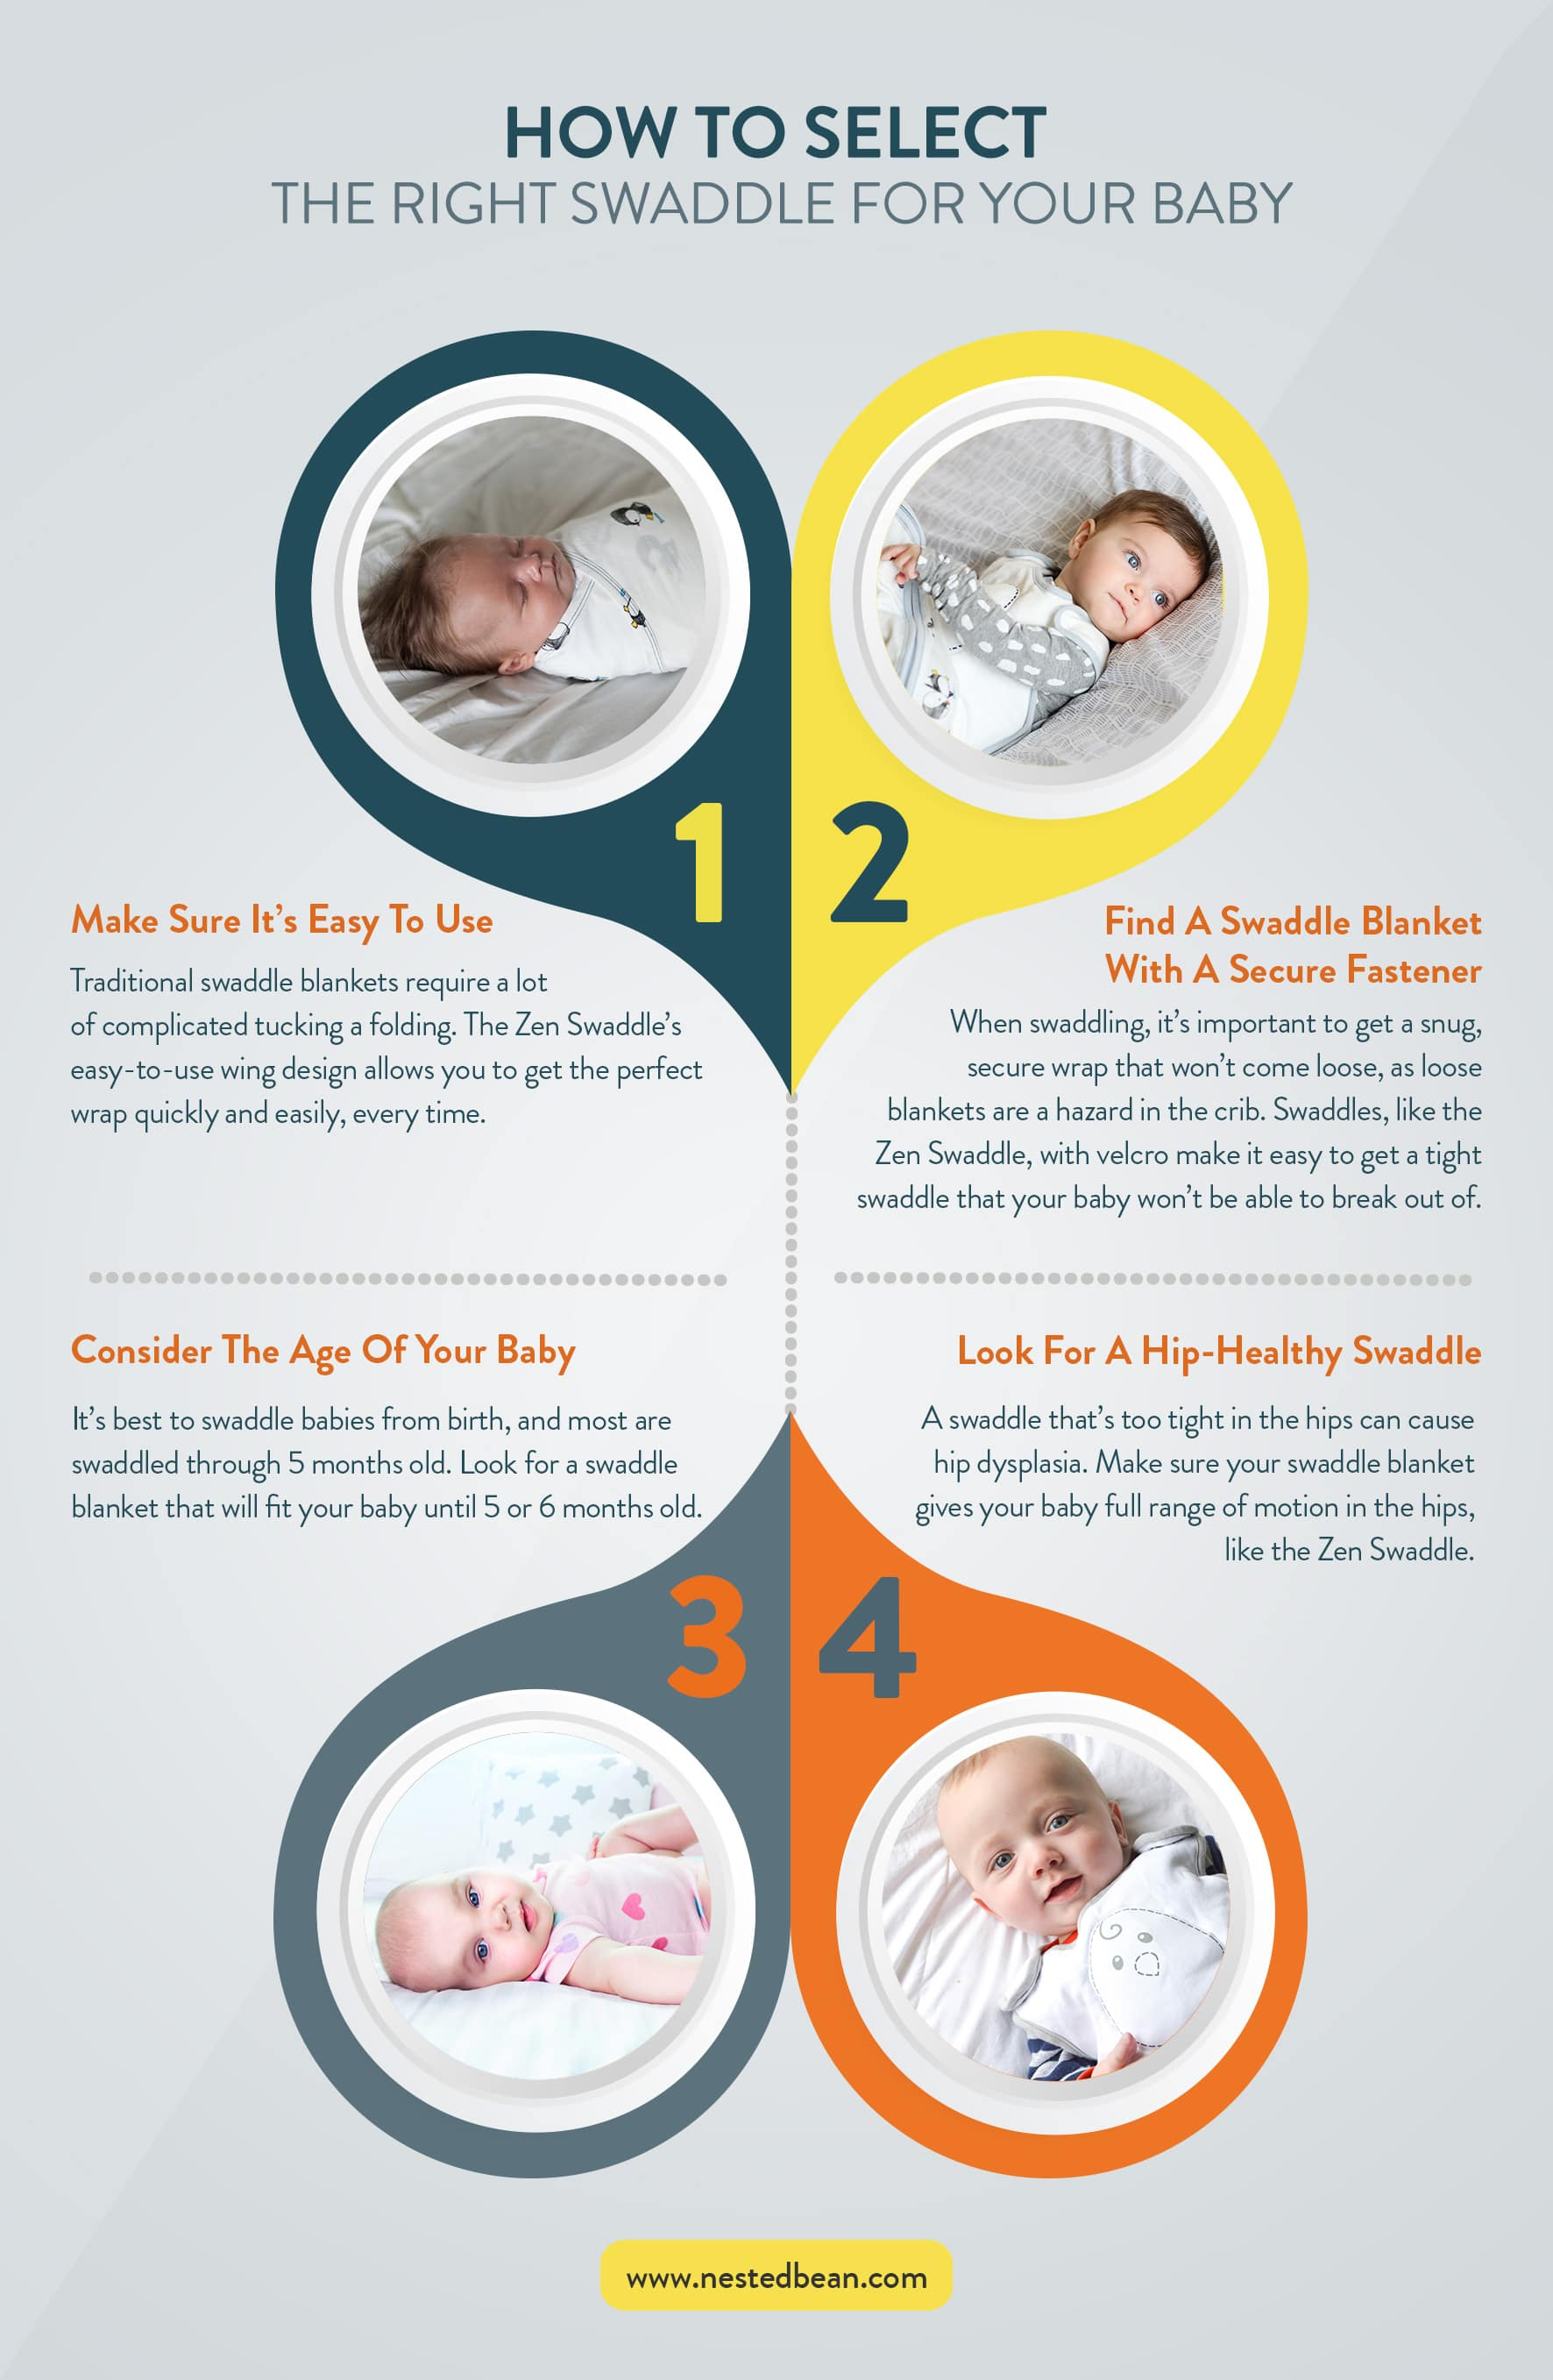 Swaddle for your baby